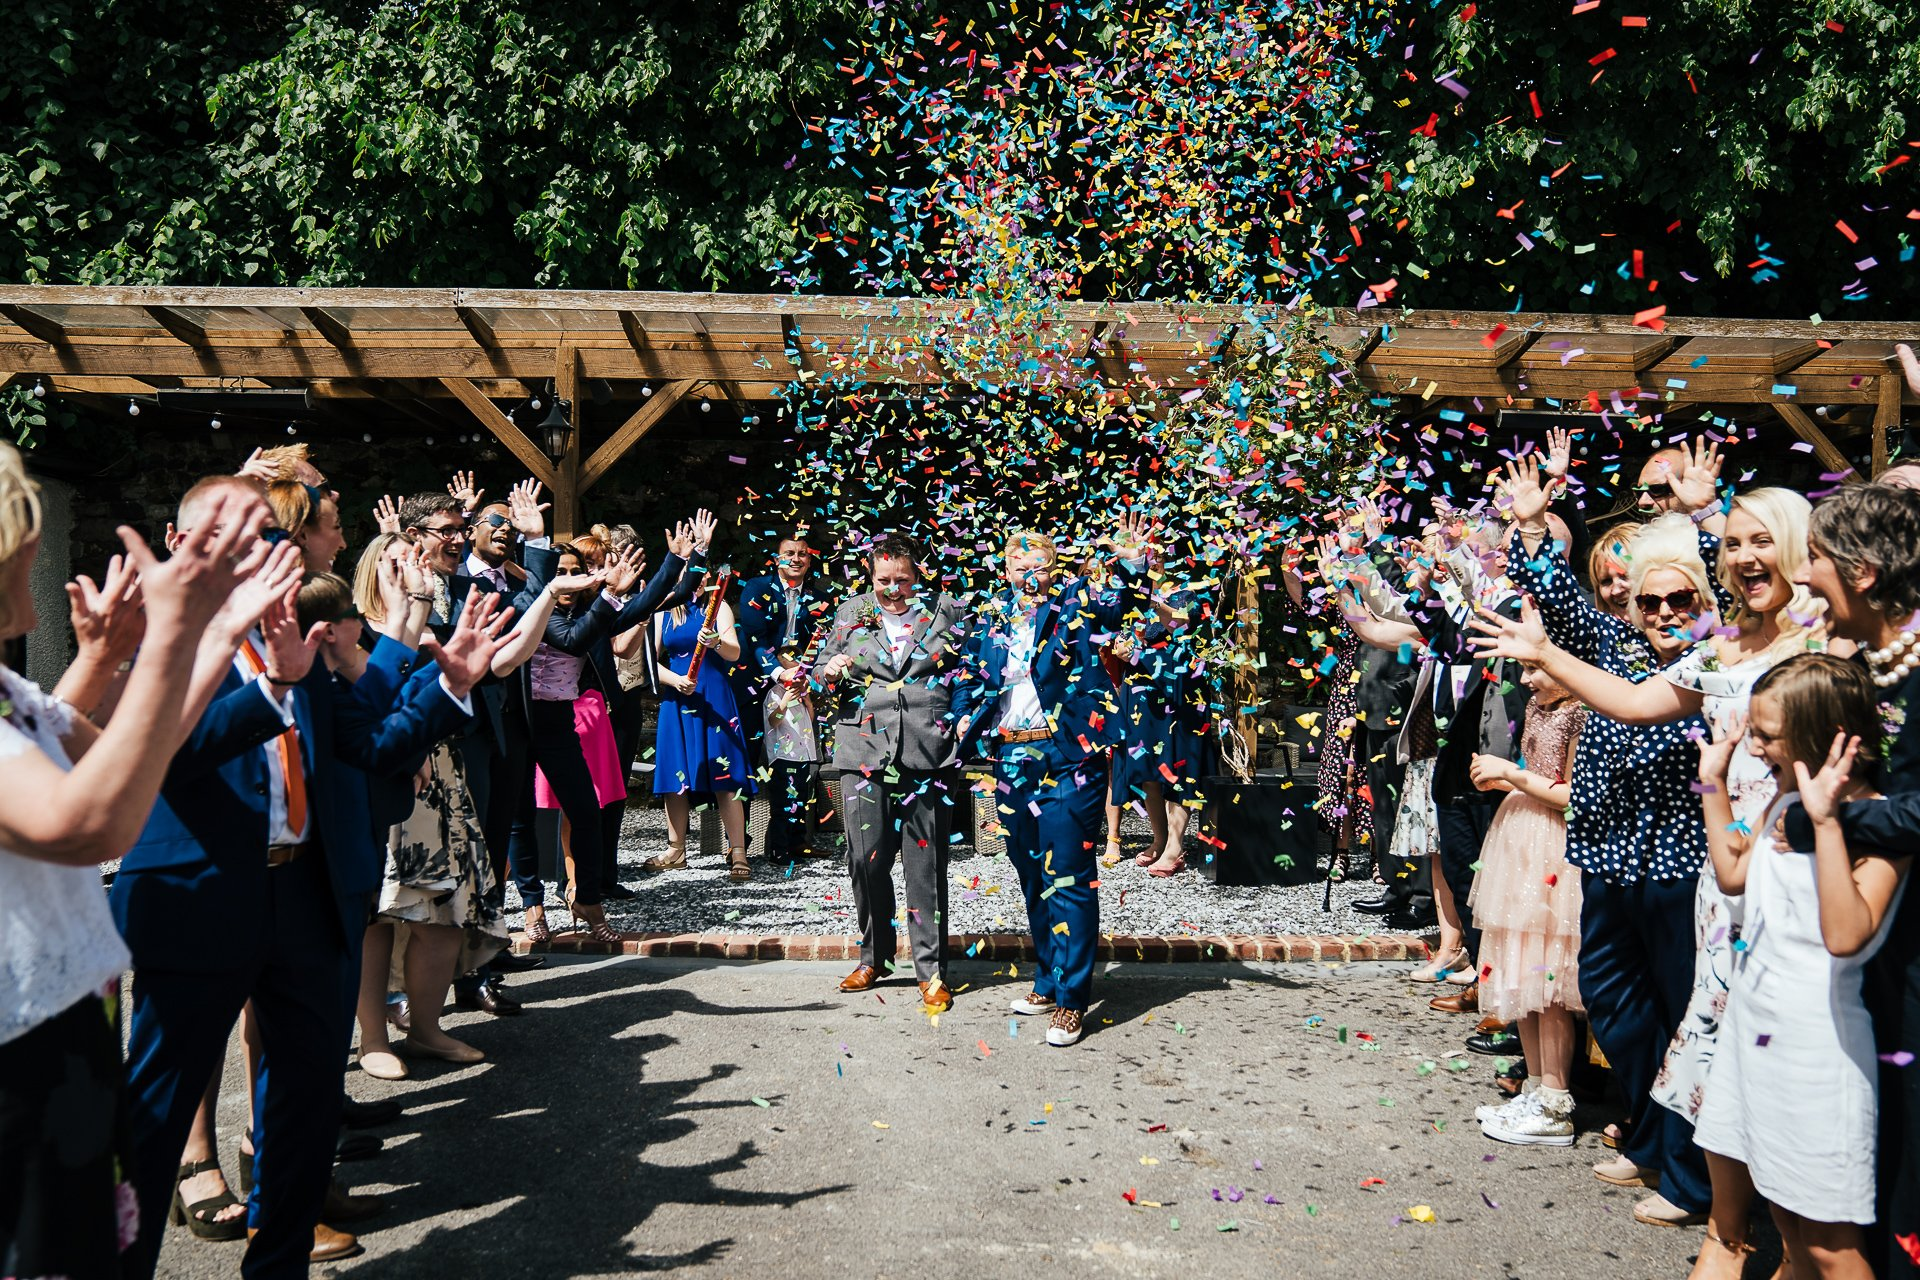 Two brides showered with confetti after their wedding ceremony